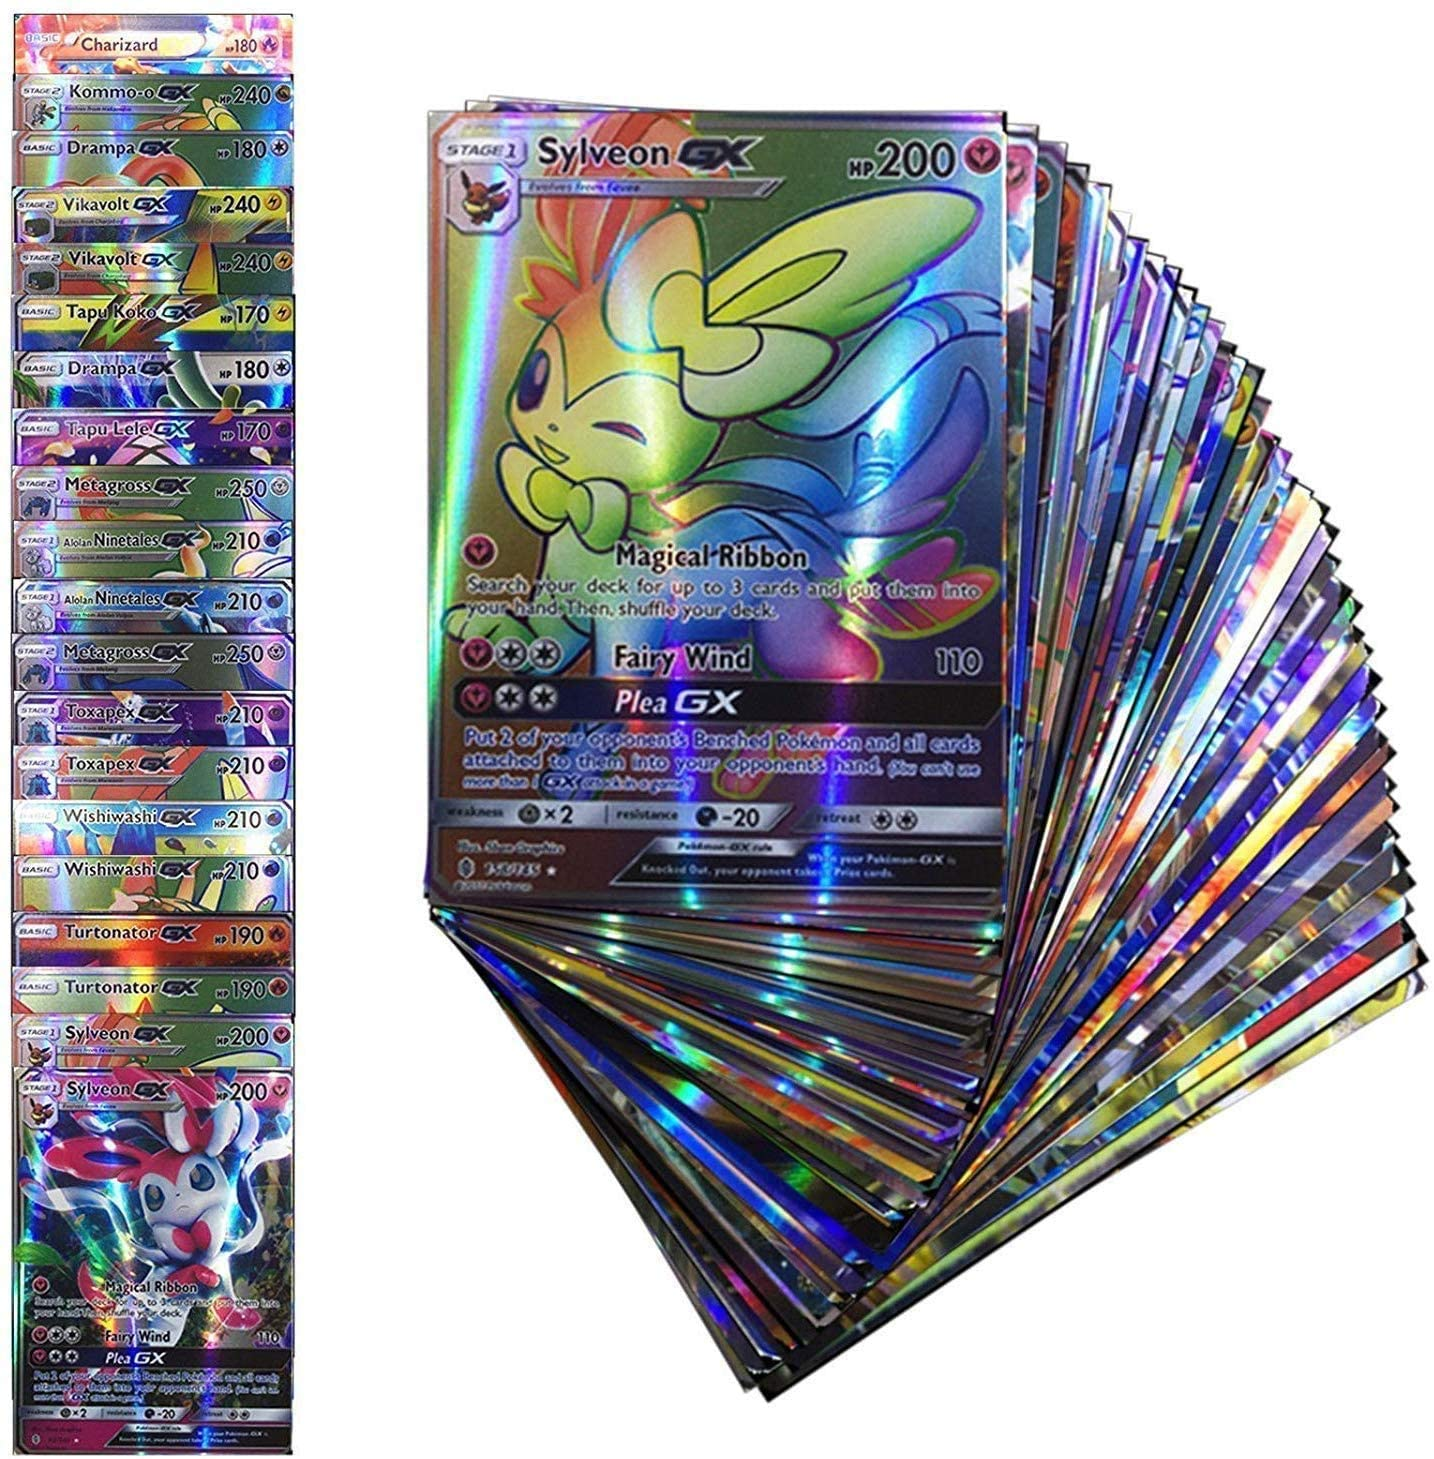 20 Pcs No Repeat Pokemons GX Card Shining TAKARA TOMY Cards Game TAG TEAM Battle Carte Trading Children Toy